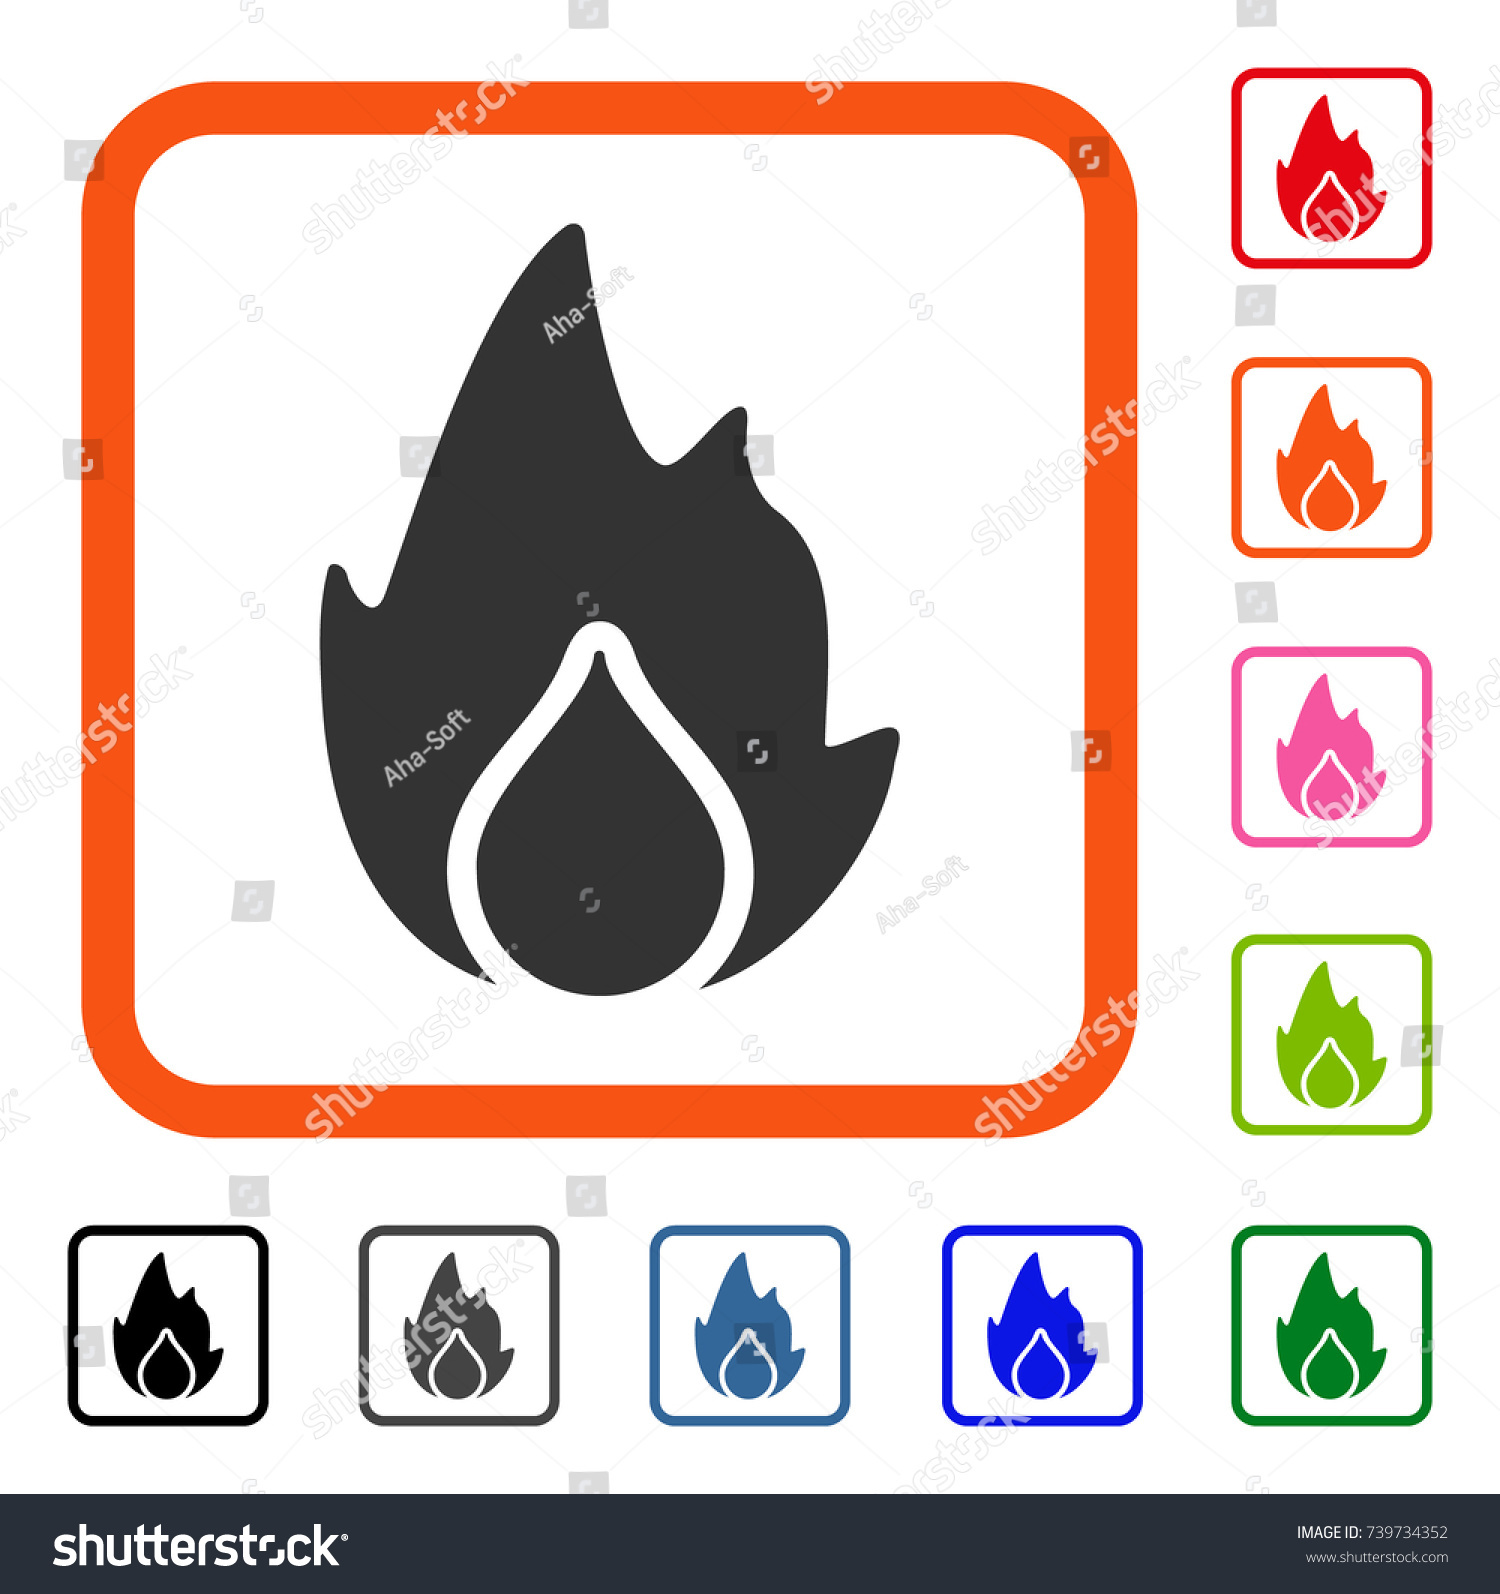 Fire water drop icon flat gray stock vector 739734352 shutterstock fire and water drop icon flat gray pictogram symbol inside an orange rounded square biocorpaavc Choice Image